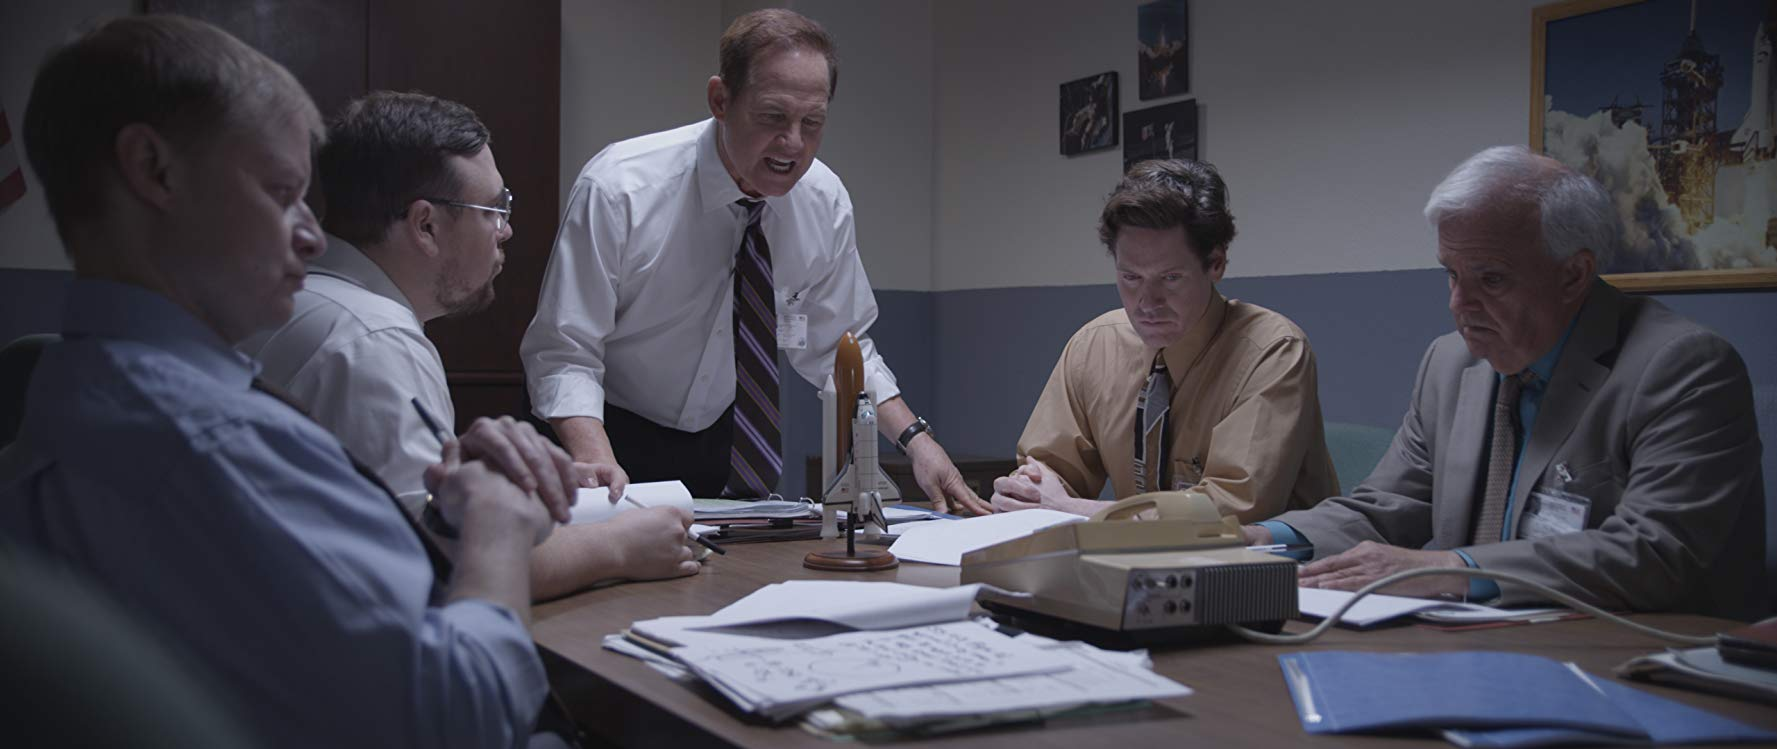 Les Miles movie: The Challenger Disaster review, cast, how to watch guide